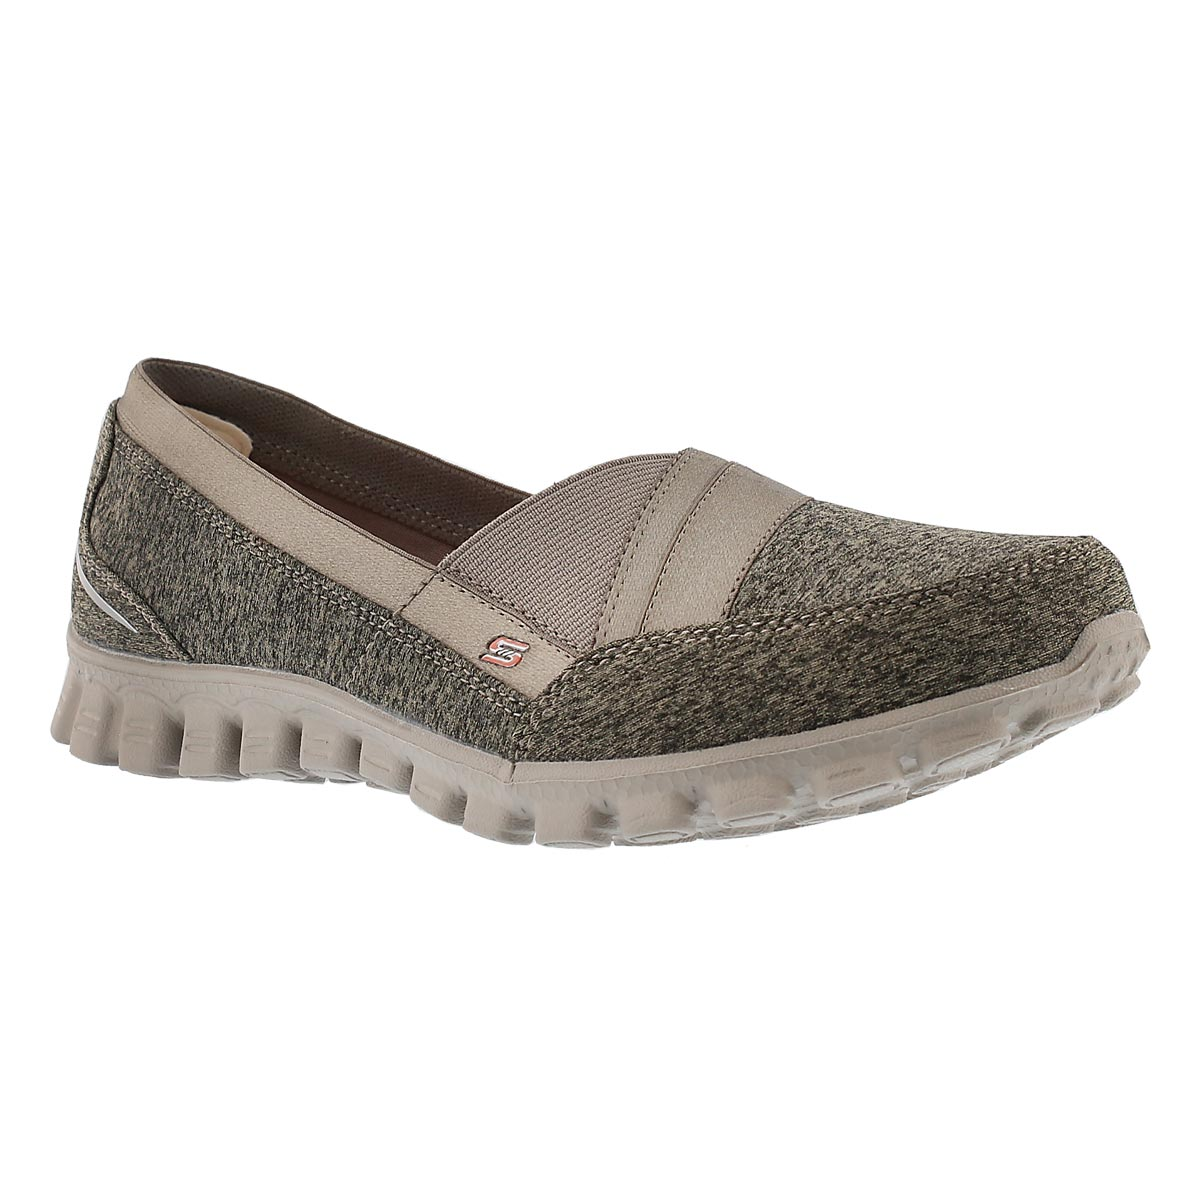 Lds Fascination taupe slipon walking